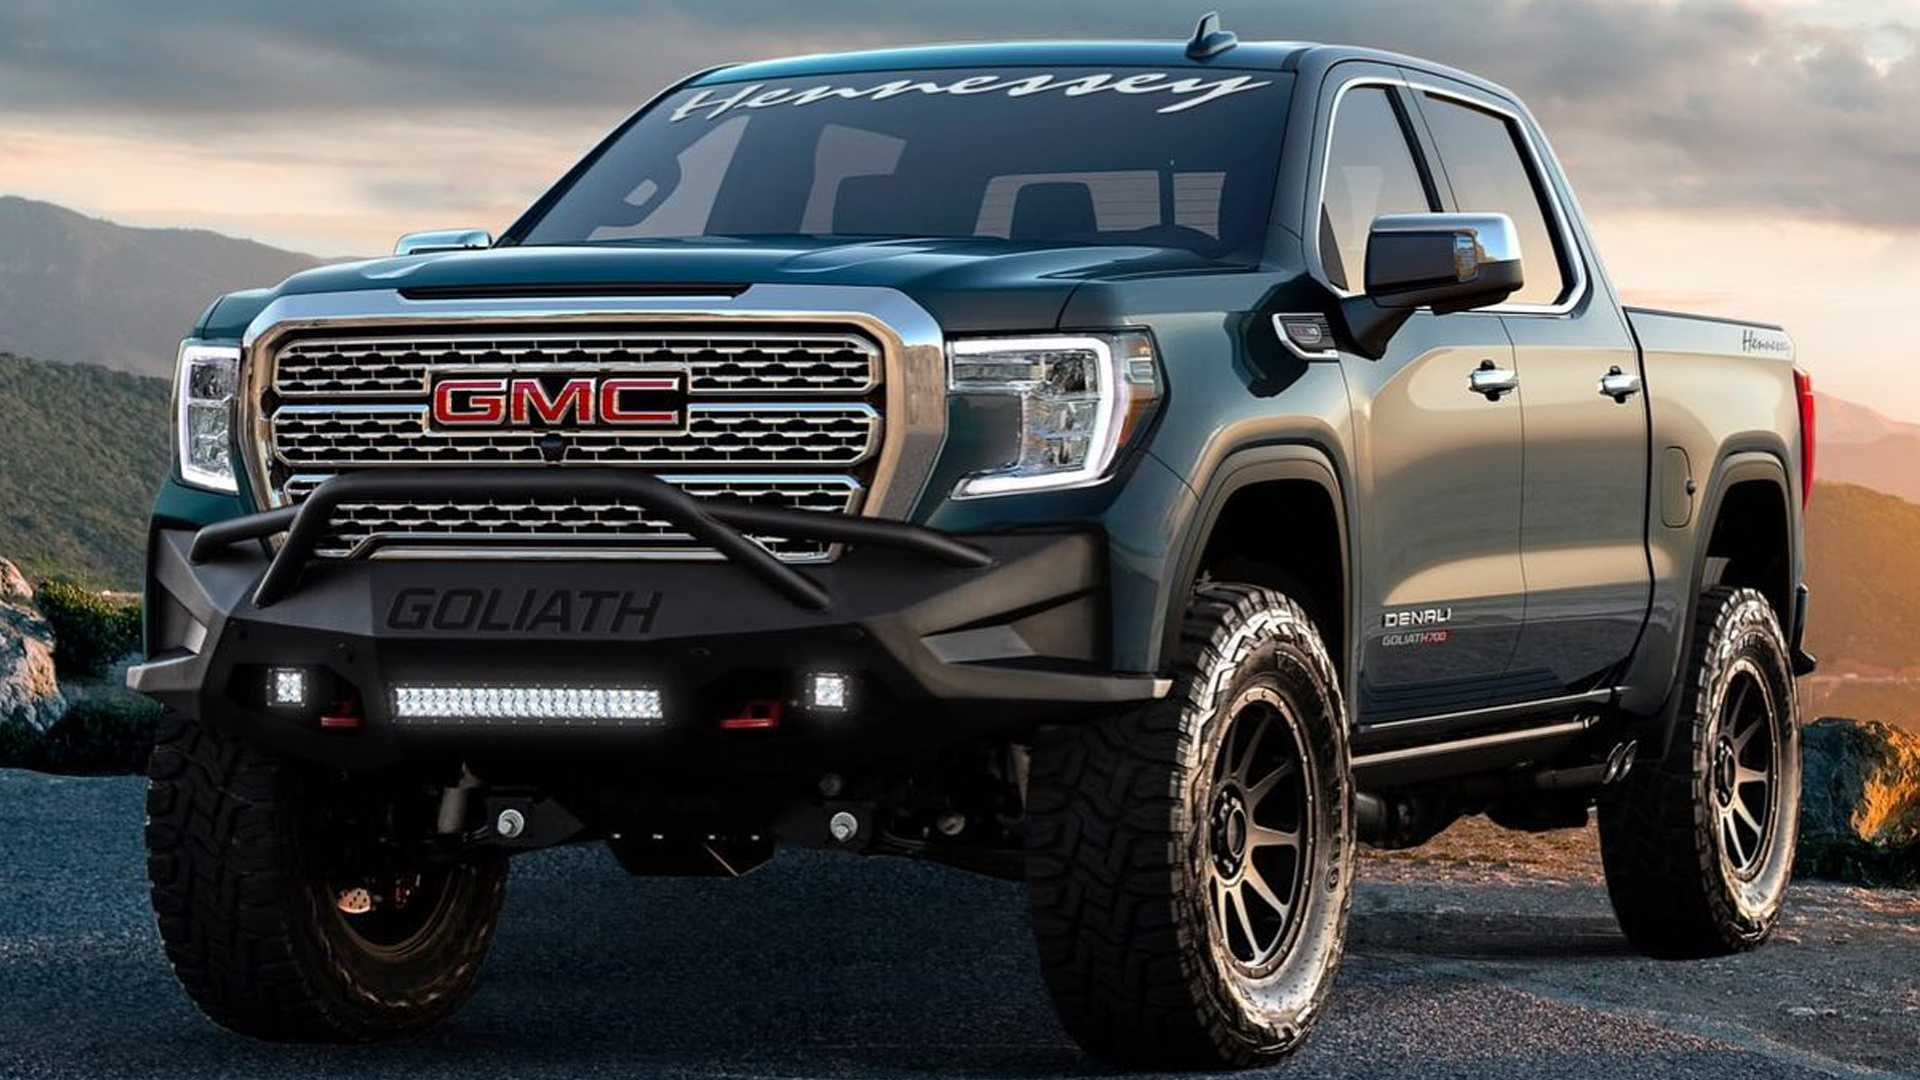 700-HP Hennessey Goliath Trucks Available With Warranty At GM Dealers